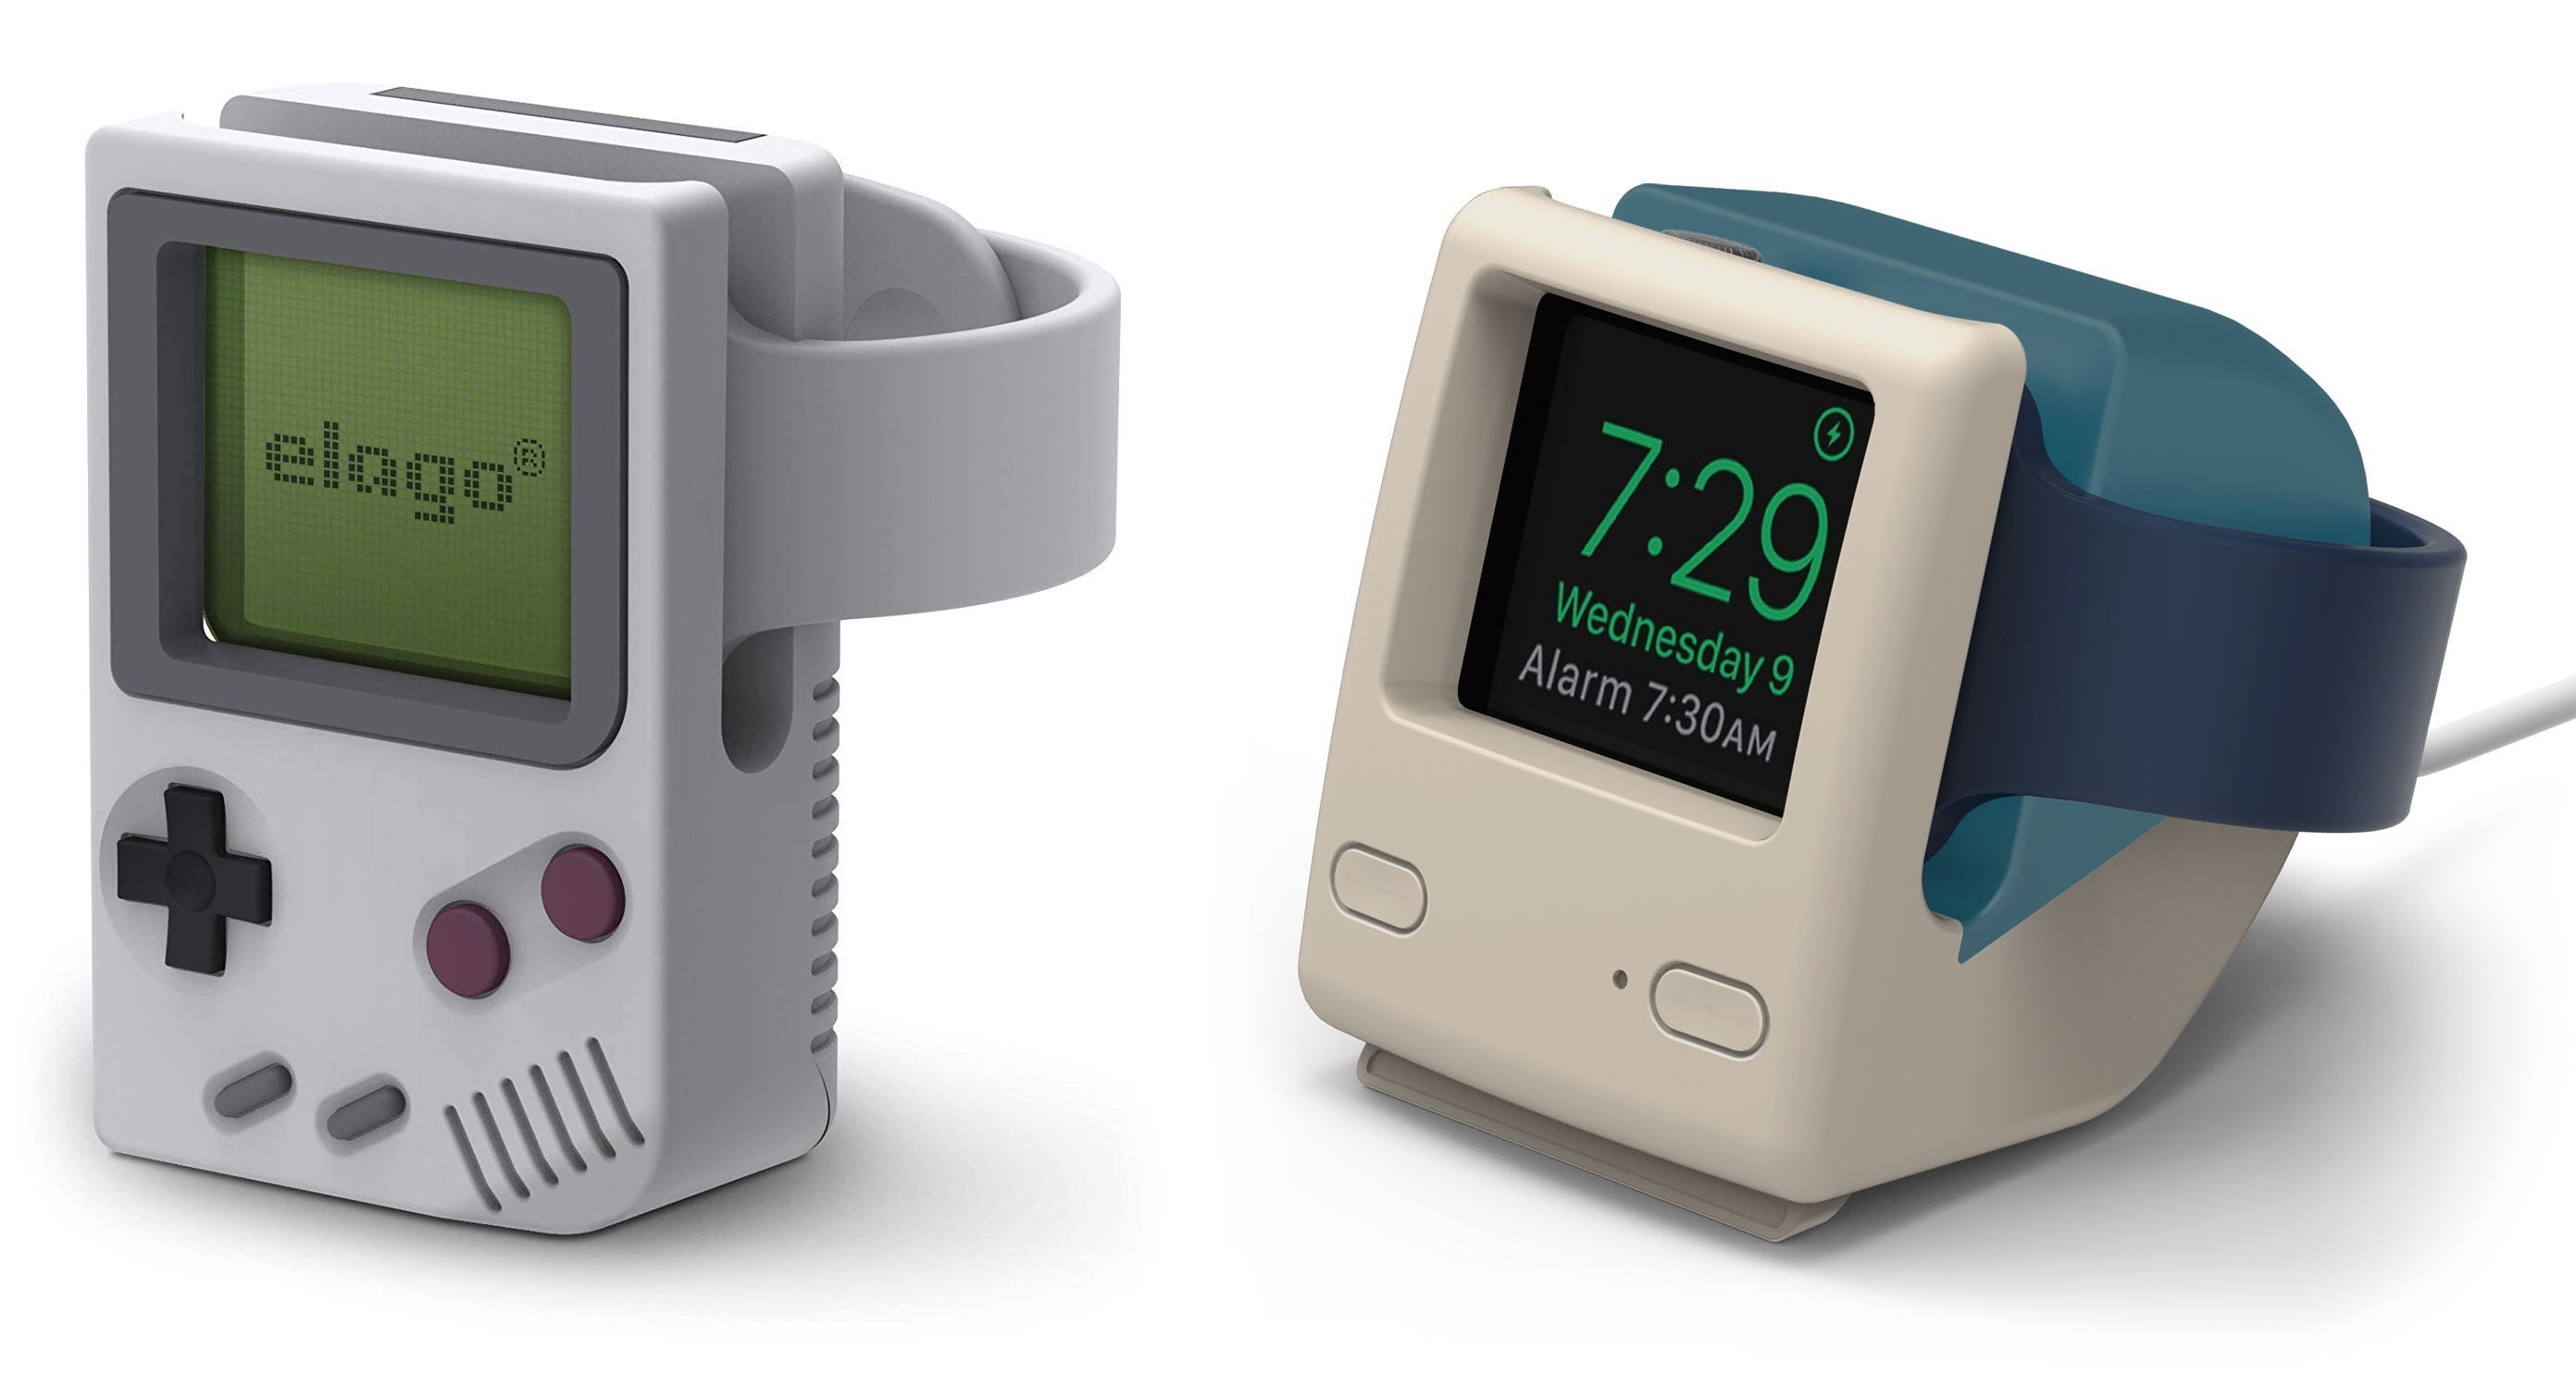 Elago transforme l'Apple Watch en iPod classic 8